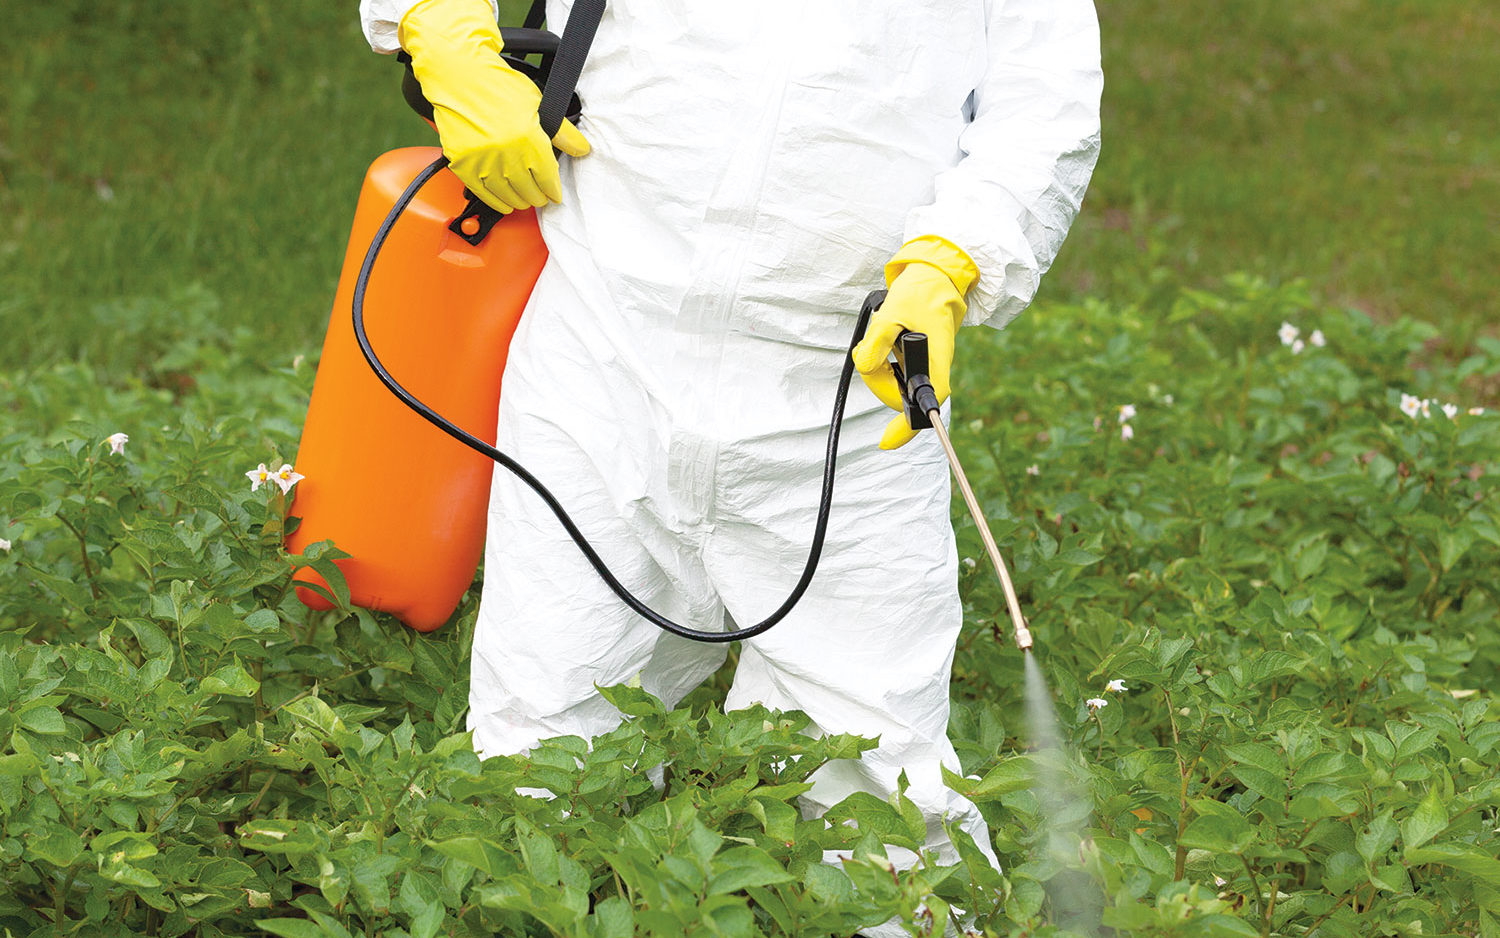 Interdiction de pesticide